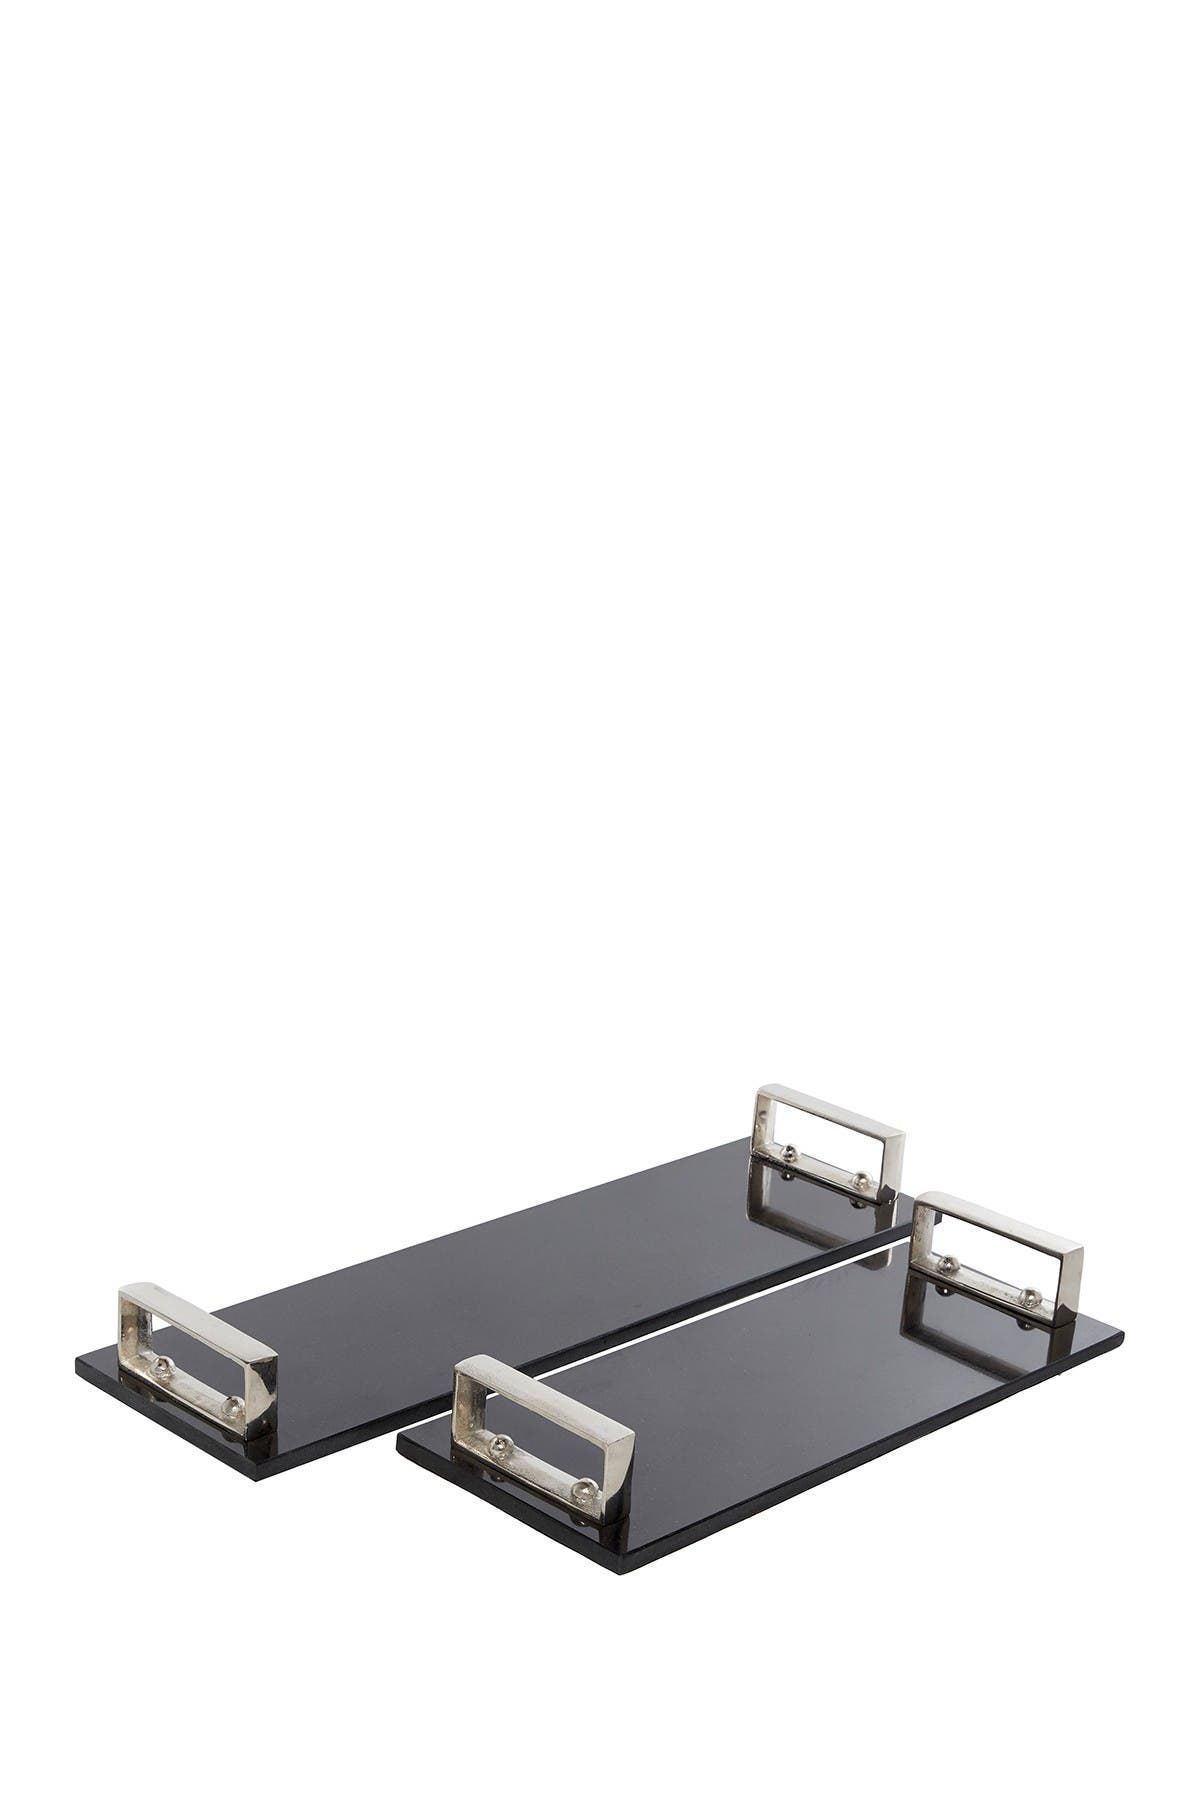 Willow Row Rectangular Flat Dark Marble Trays With Silver Aluminum Handles Set Of 2 18 24 Nordstrom Rack